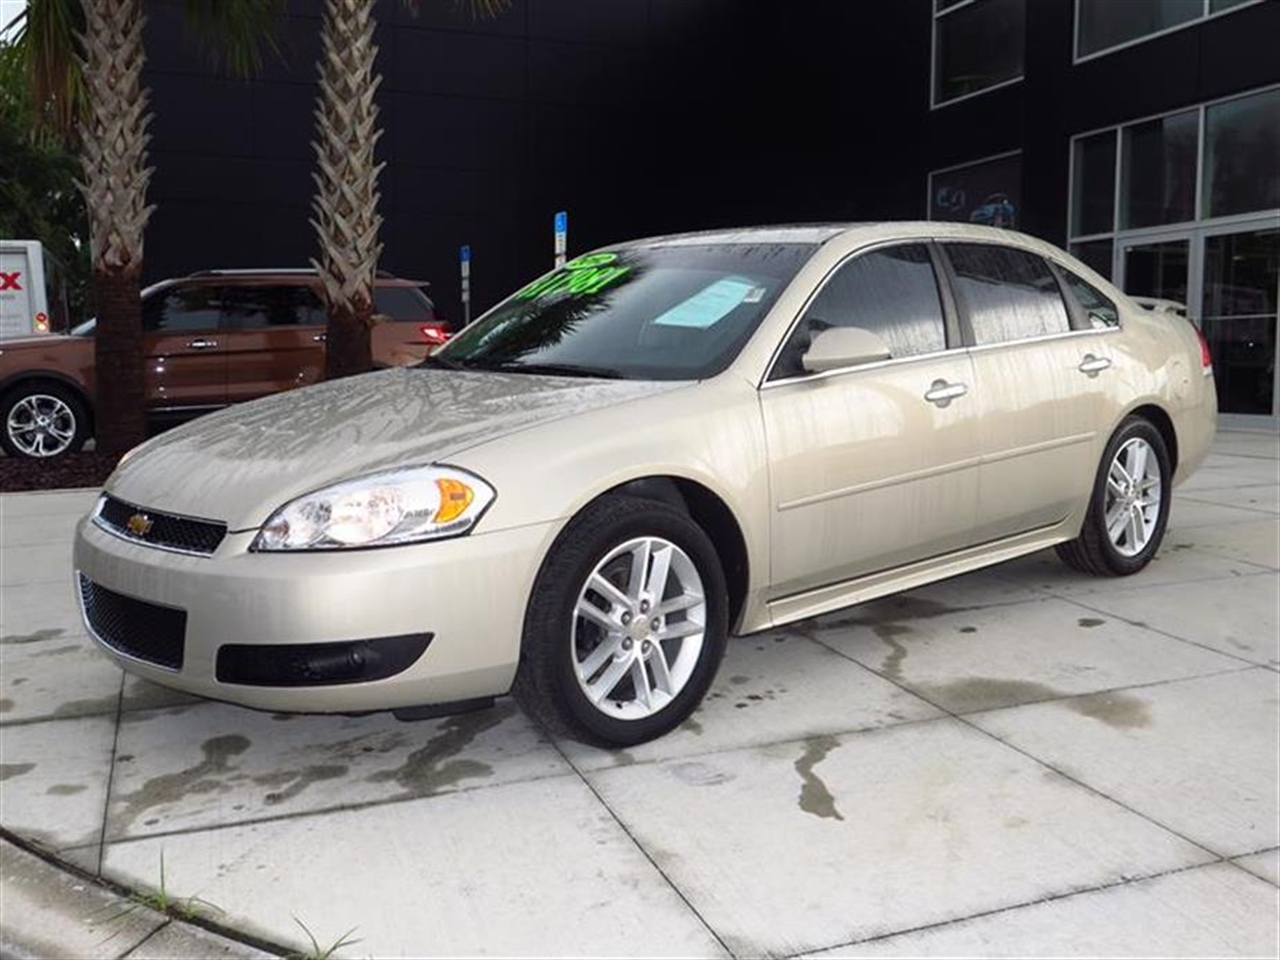 2012 CHEVROLET IMPALA 4dr Sdn LTZ 24750 miles Air conditioning dual-zone manual climate control w